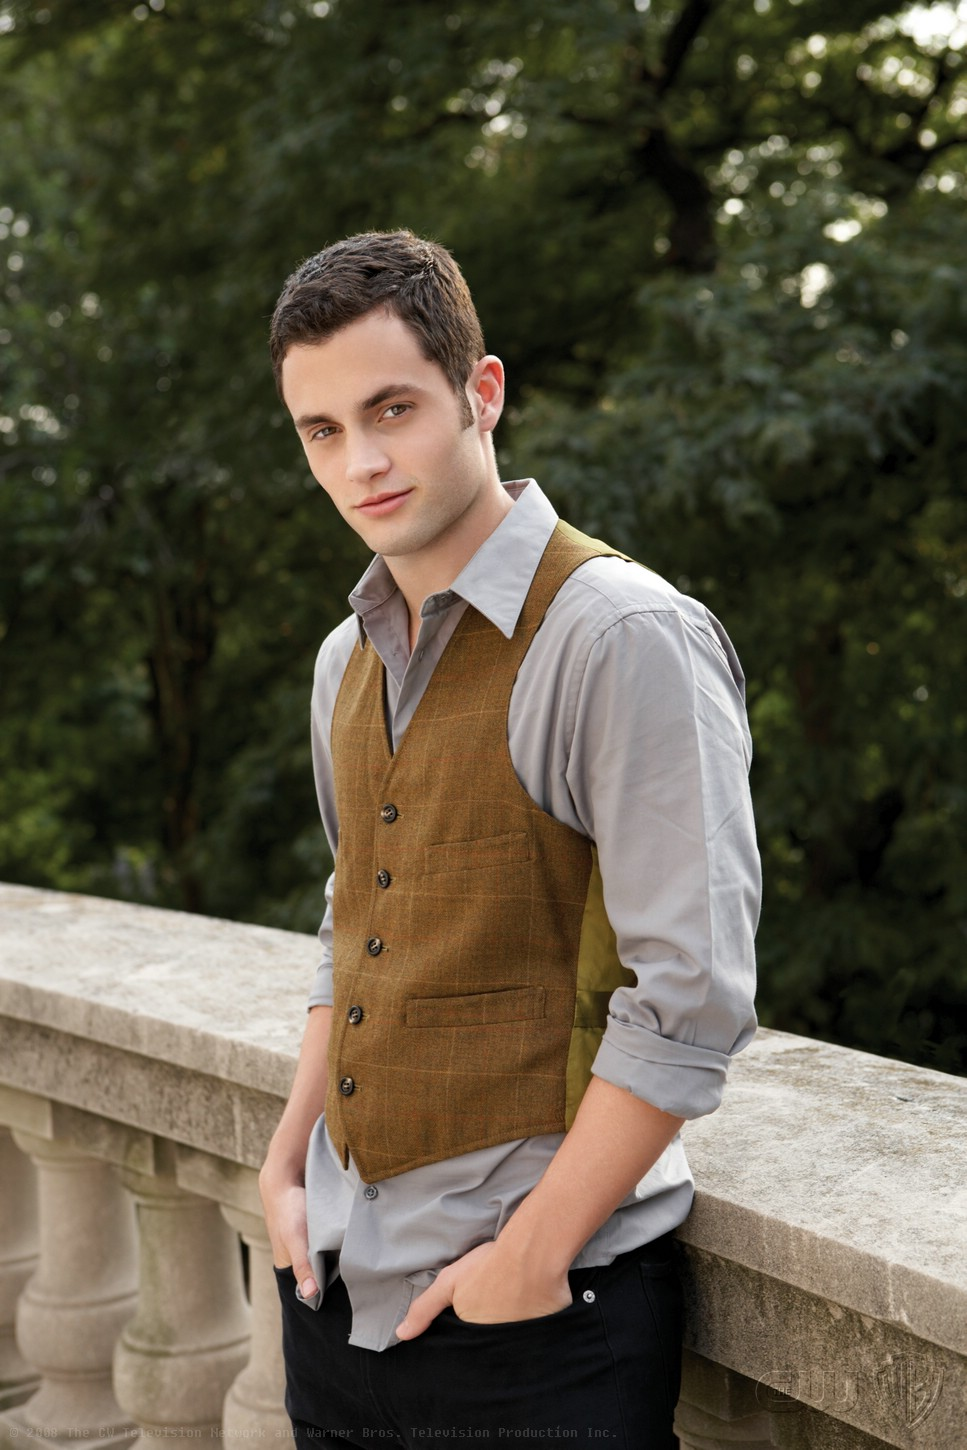 Penn Badgley photo #174842